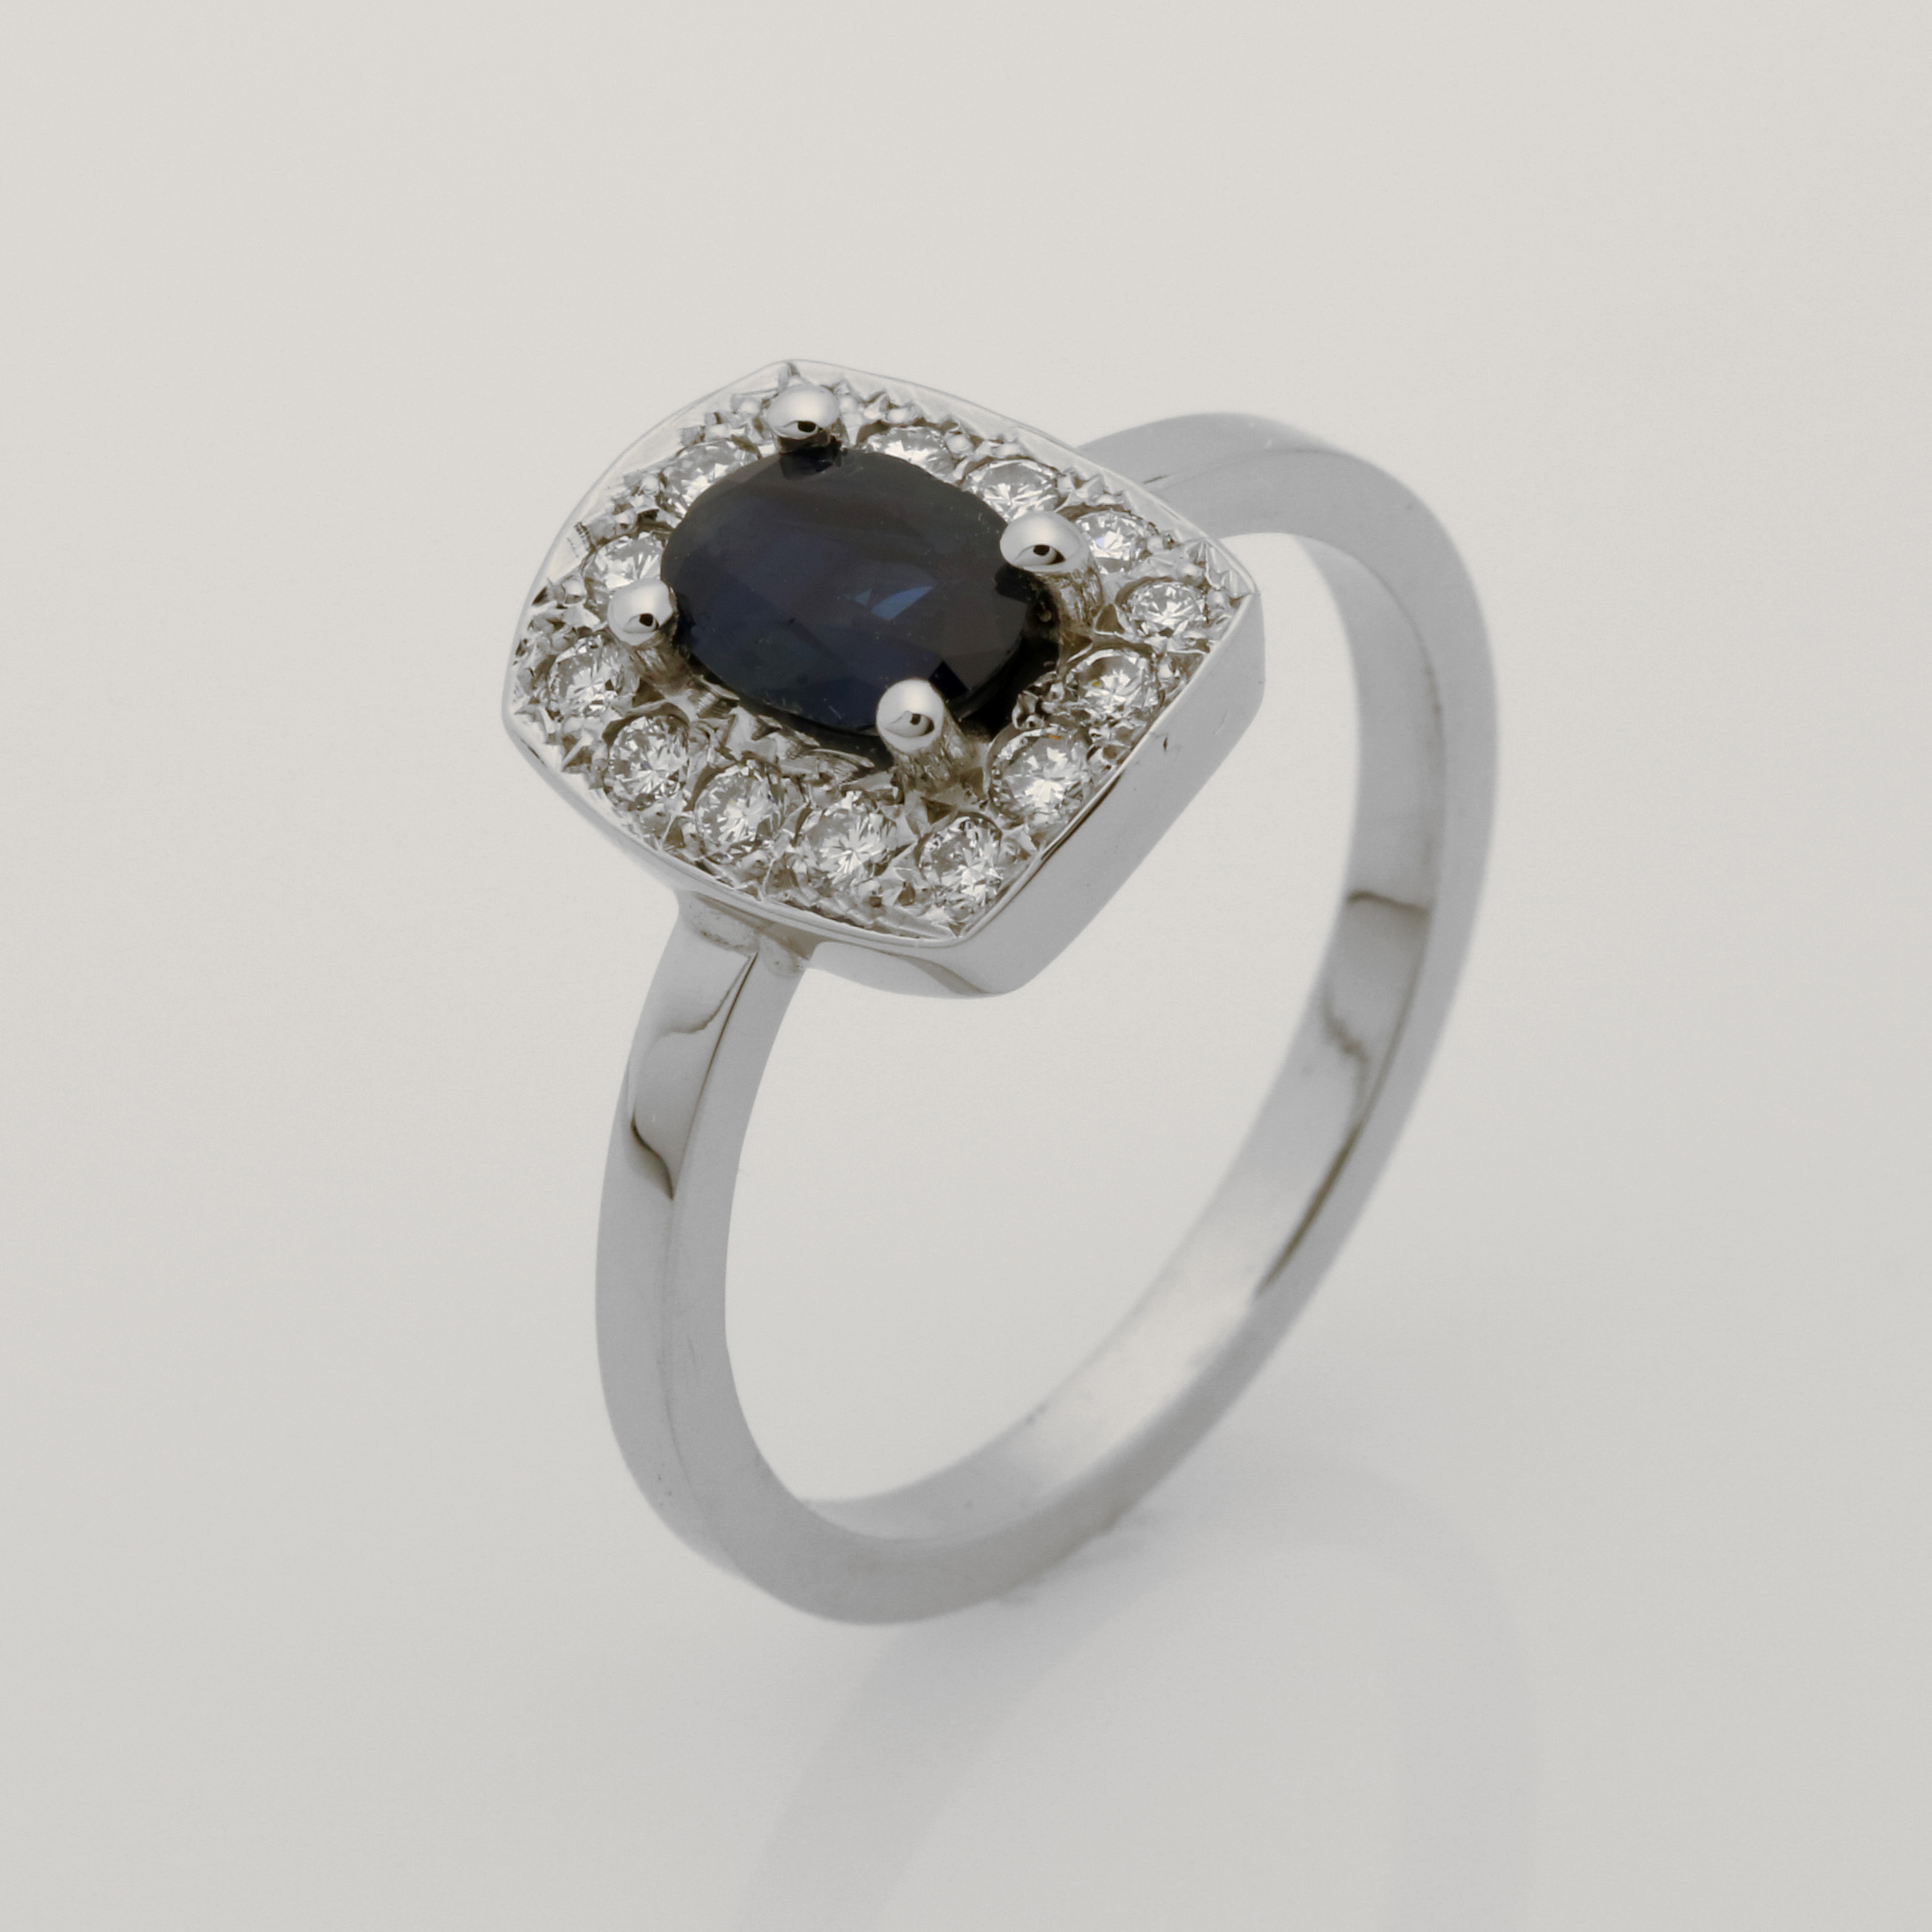 Ladies handmade palladium, sapphire and diamond ring